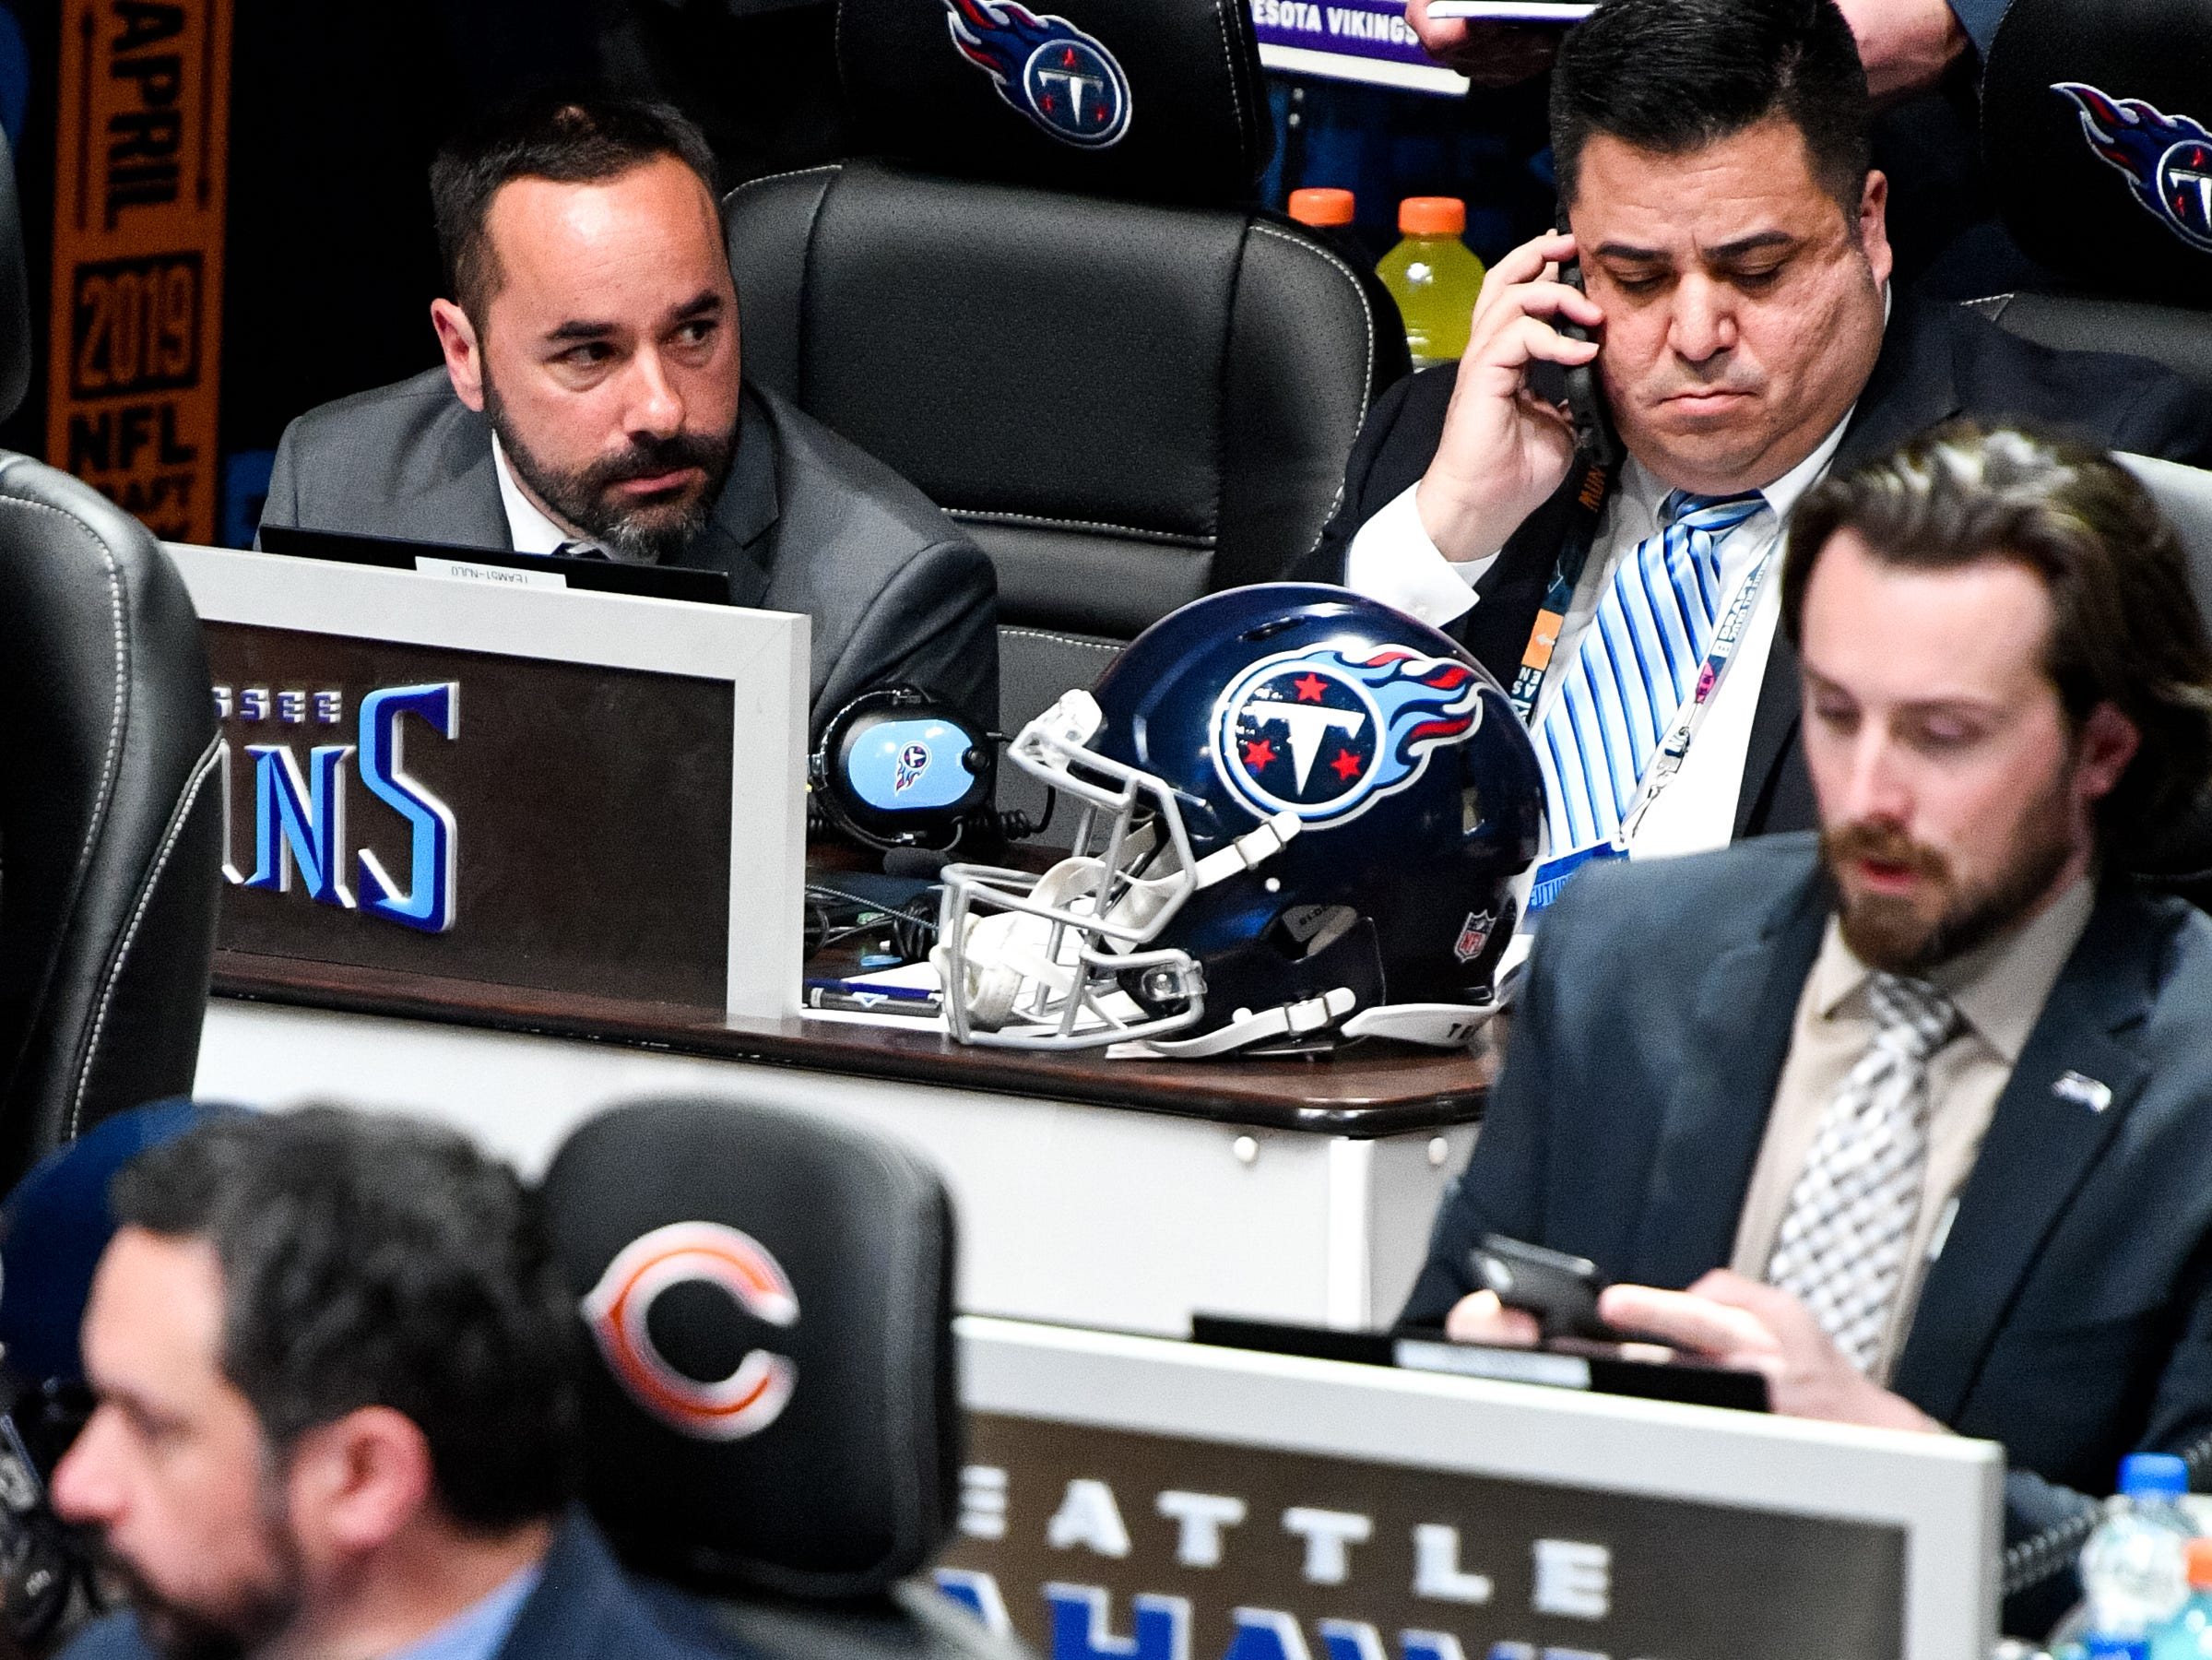 Titans personnel Joey Barranco, left, and Anthony Pastrana wait to make the team's pick in the first round of the NFL Draft at the Schermerhorn Symphony Center Thursday, April 25, 2019, in Nashville, Tenn.